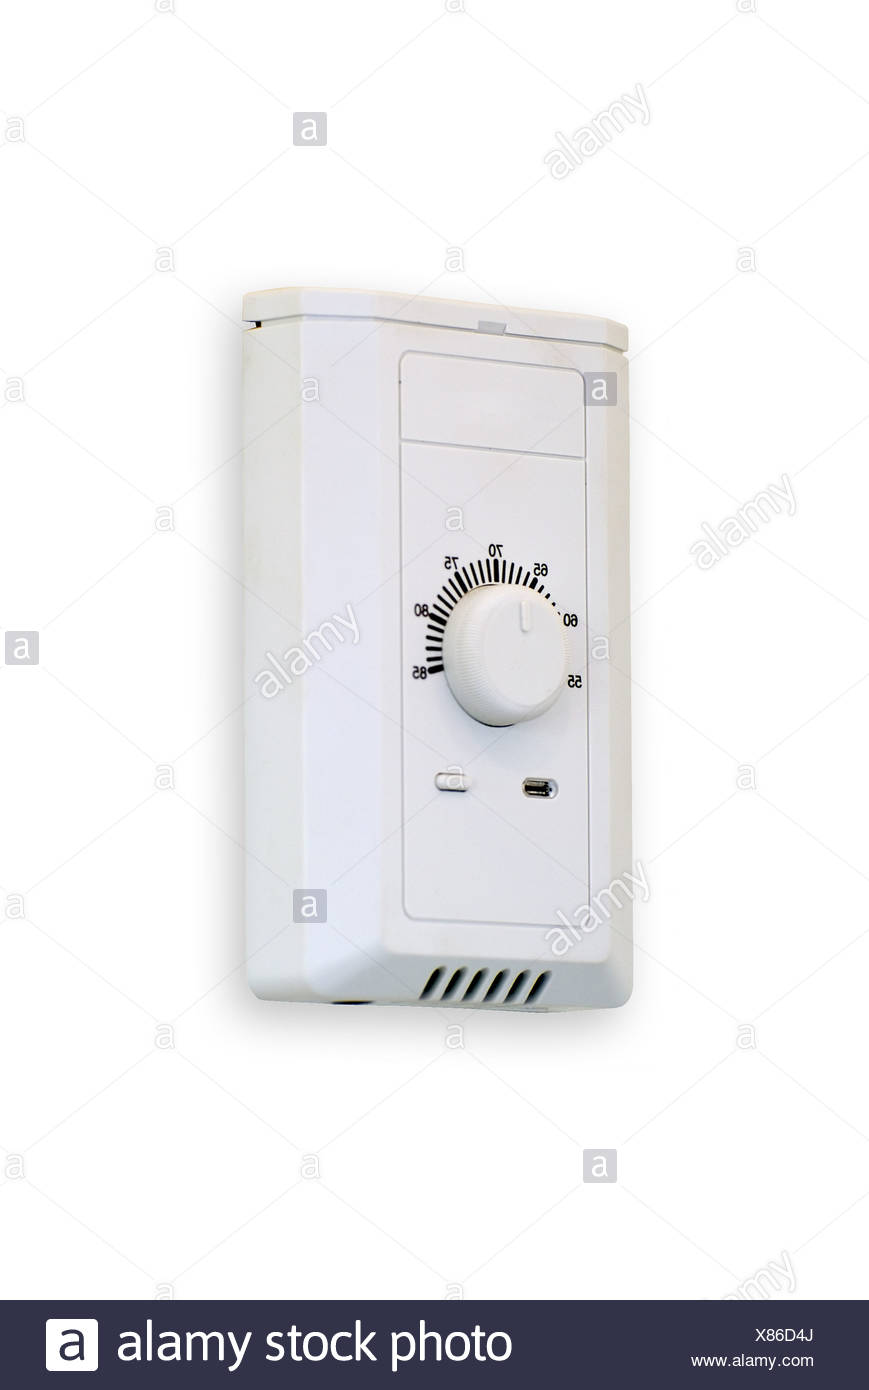 heating and air conditioning - Stock Image